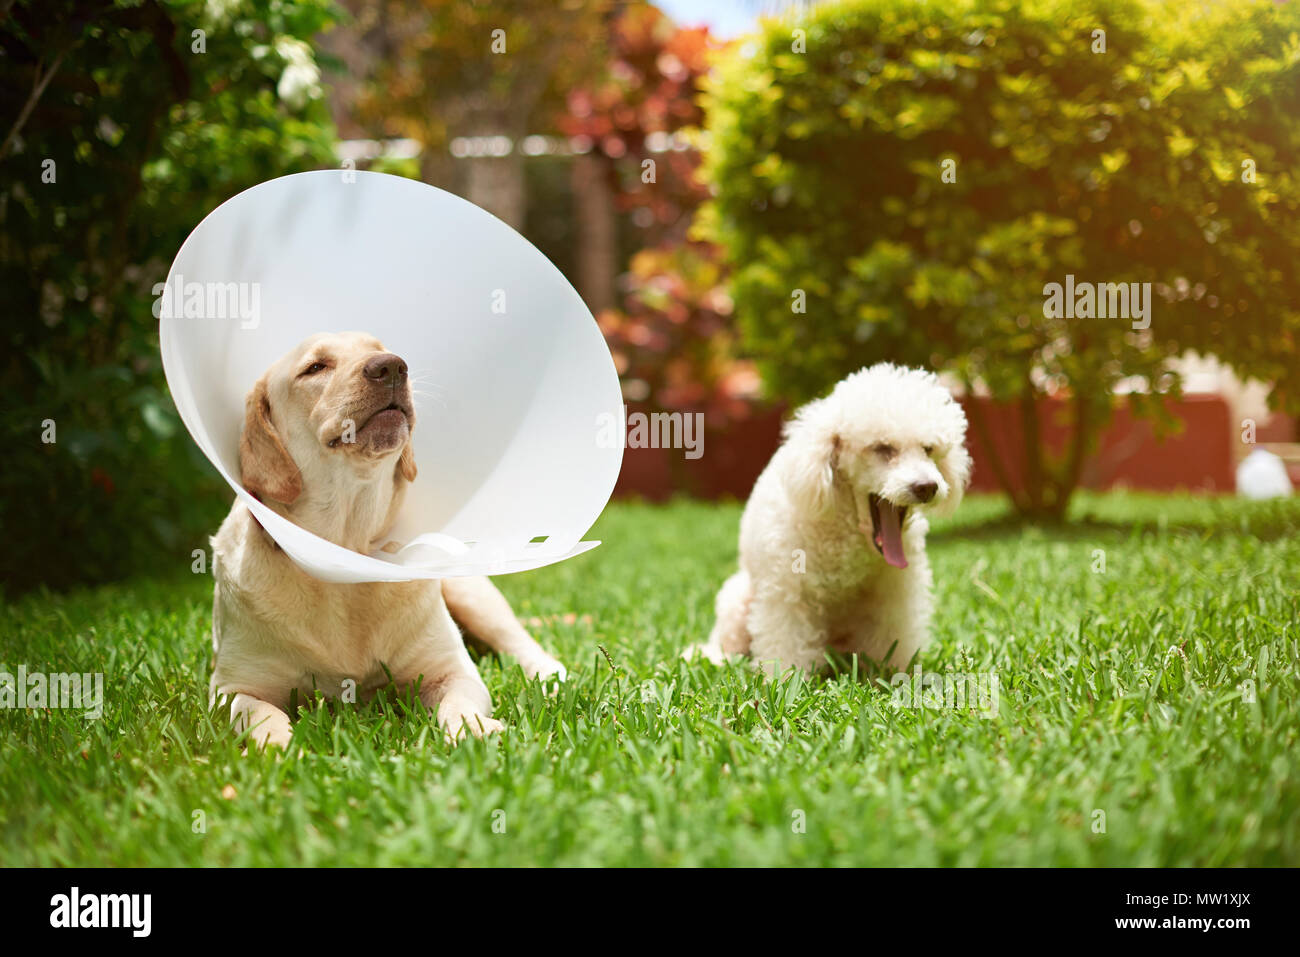 Two sick dogs on grass after vet checking - Stock Image